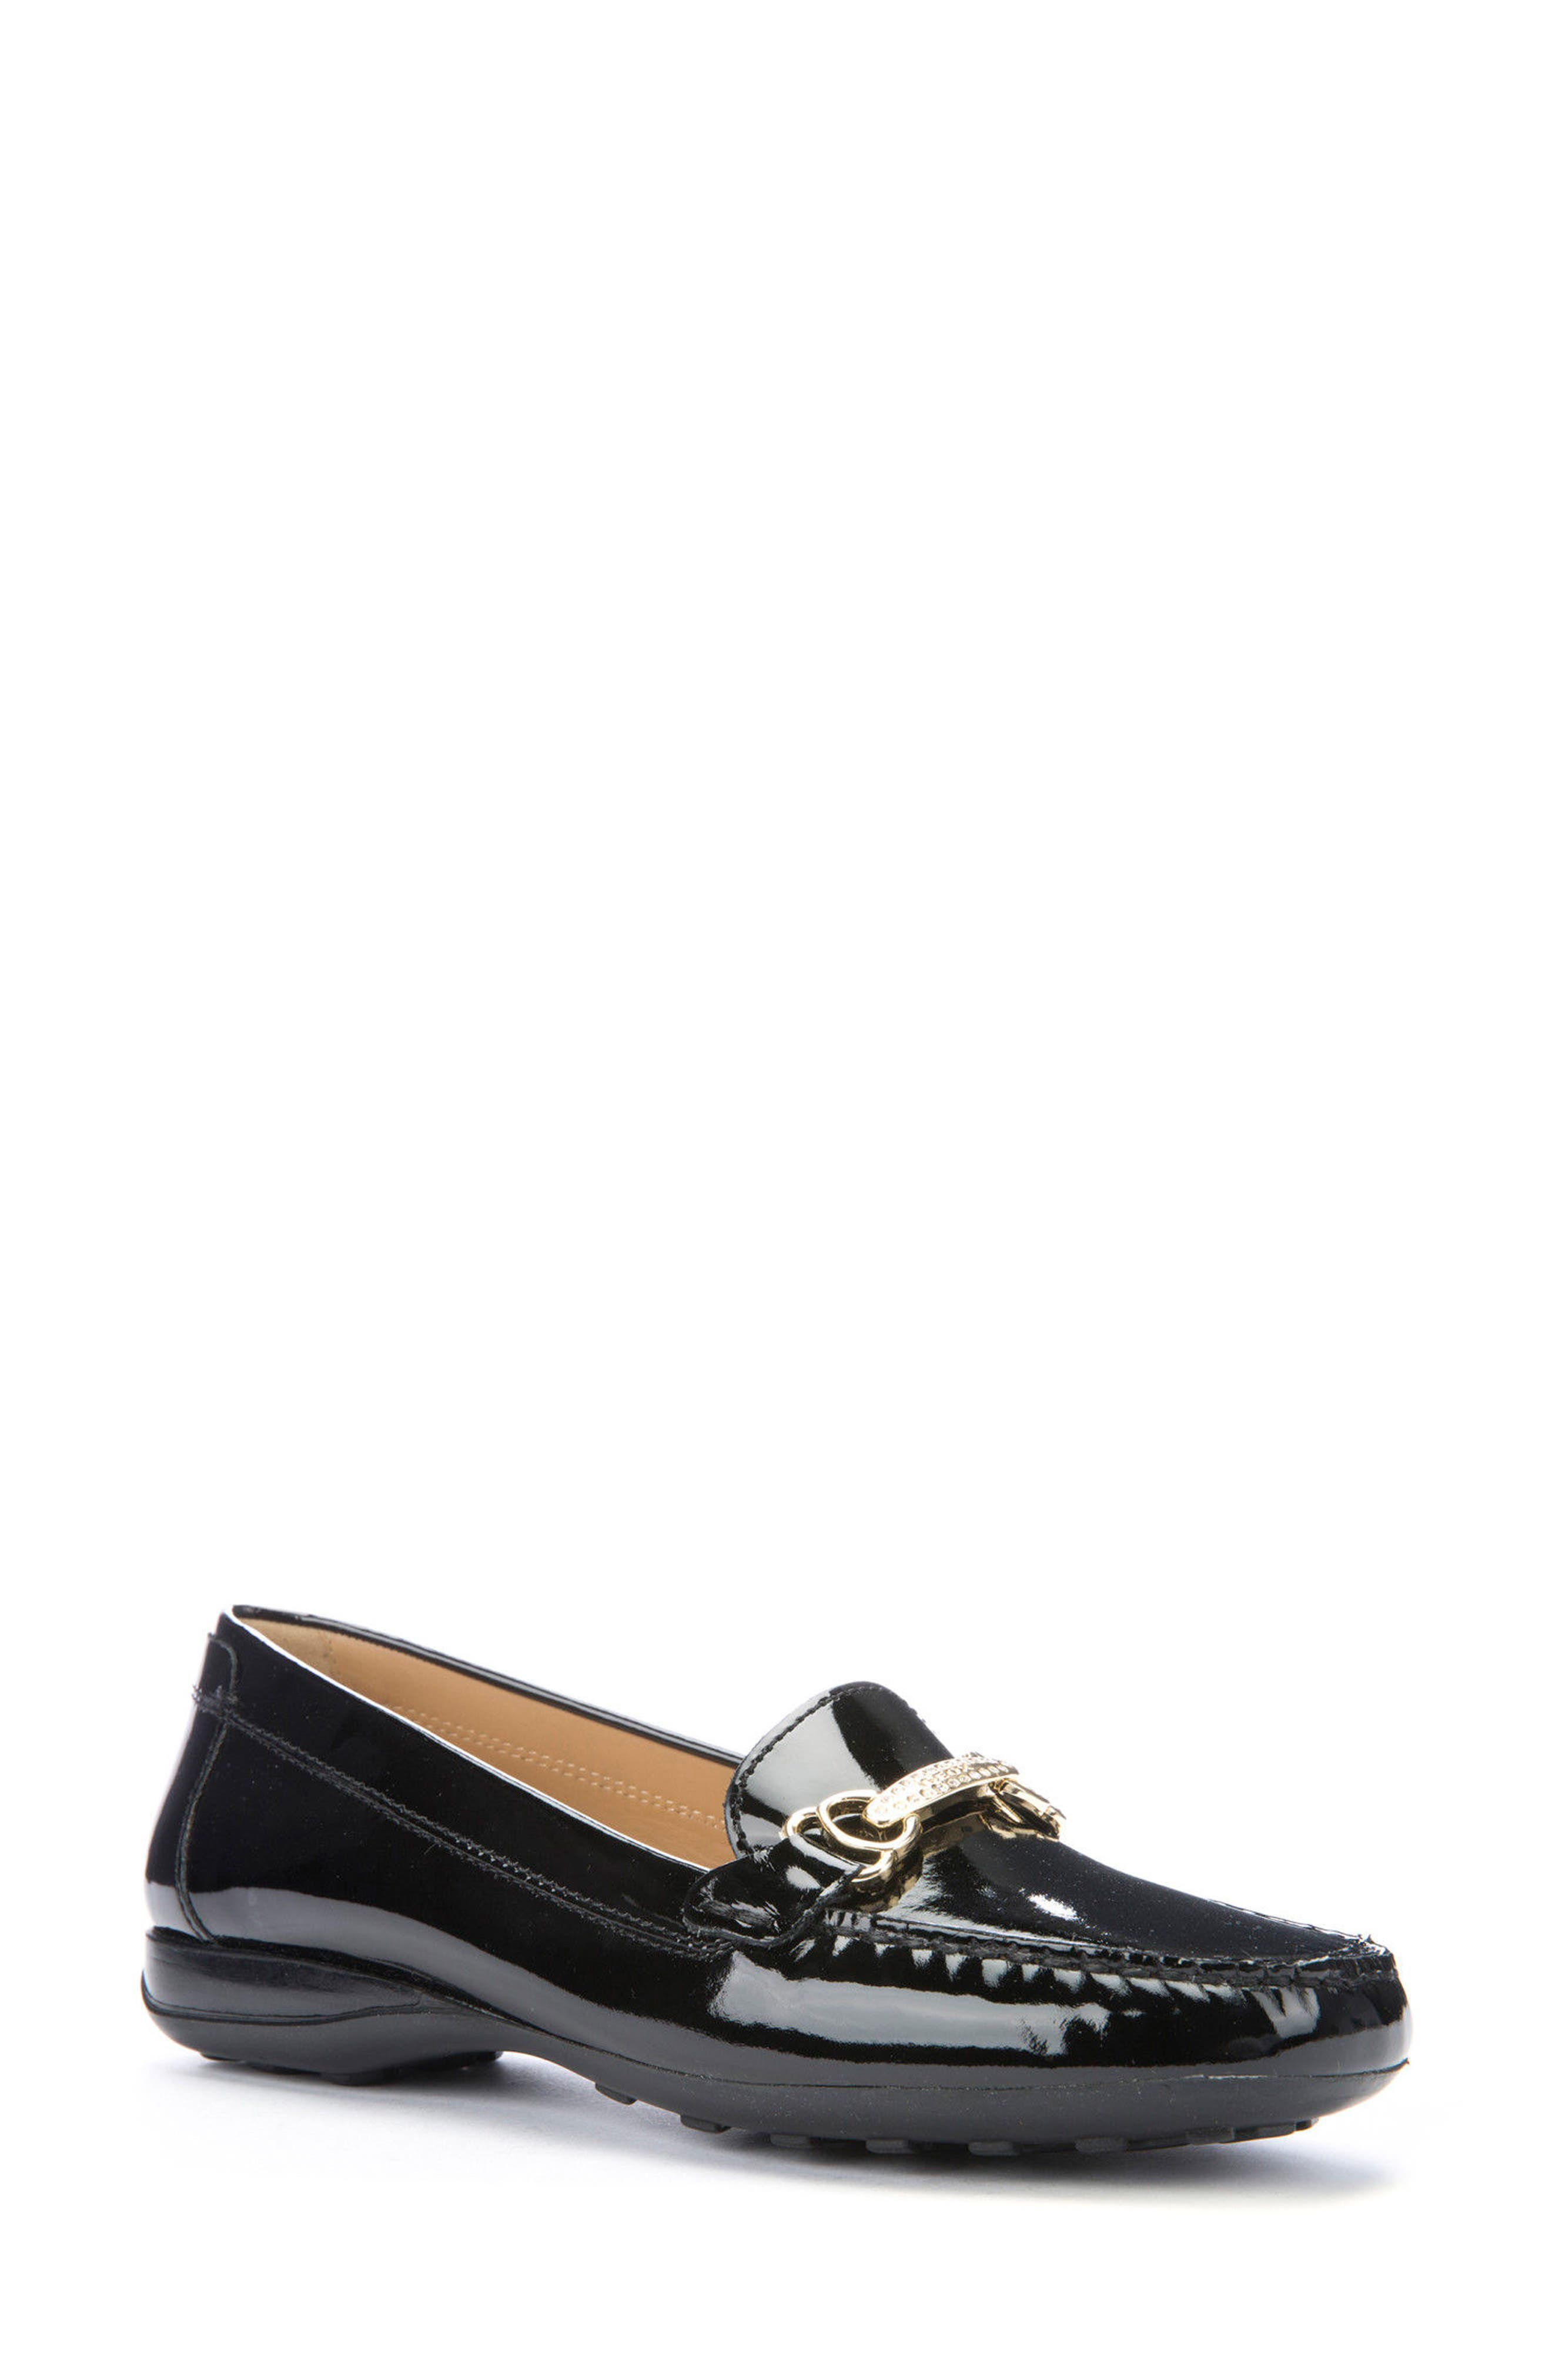 Euro 67 Loafer,                         Main,                         color, 002